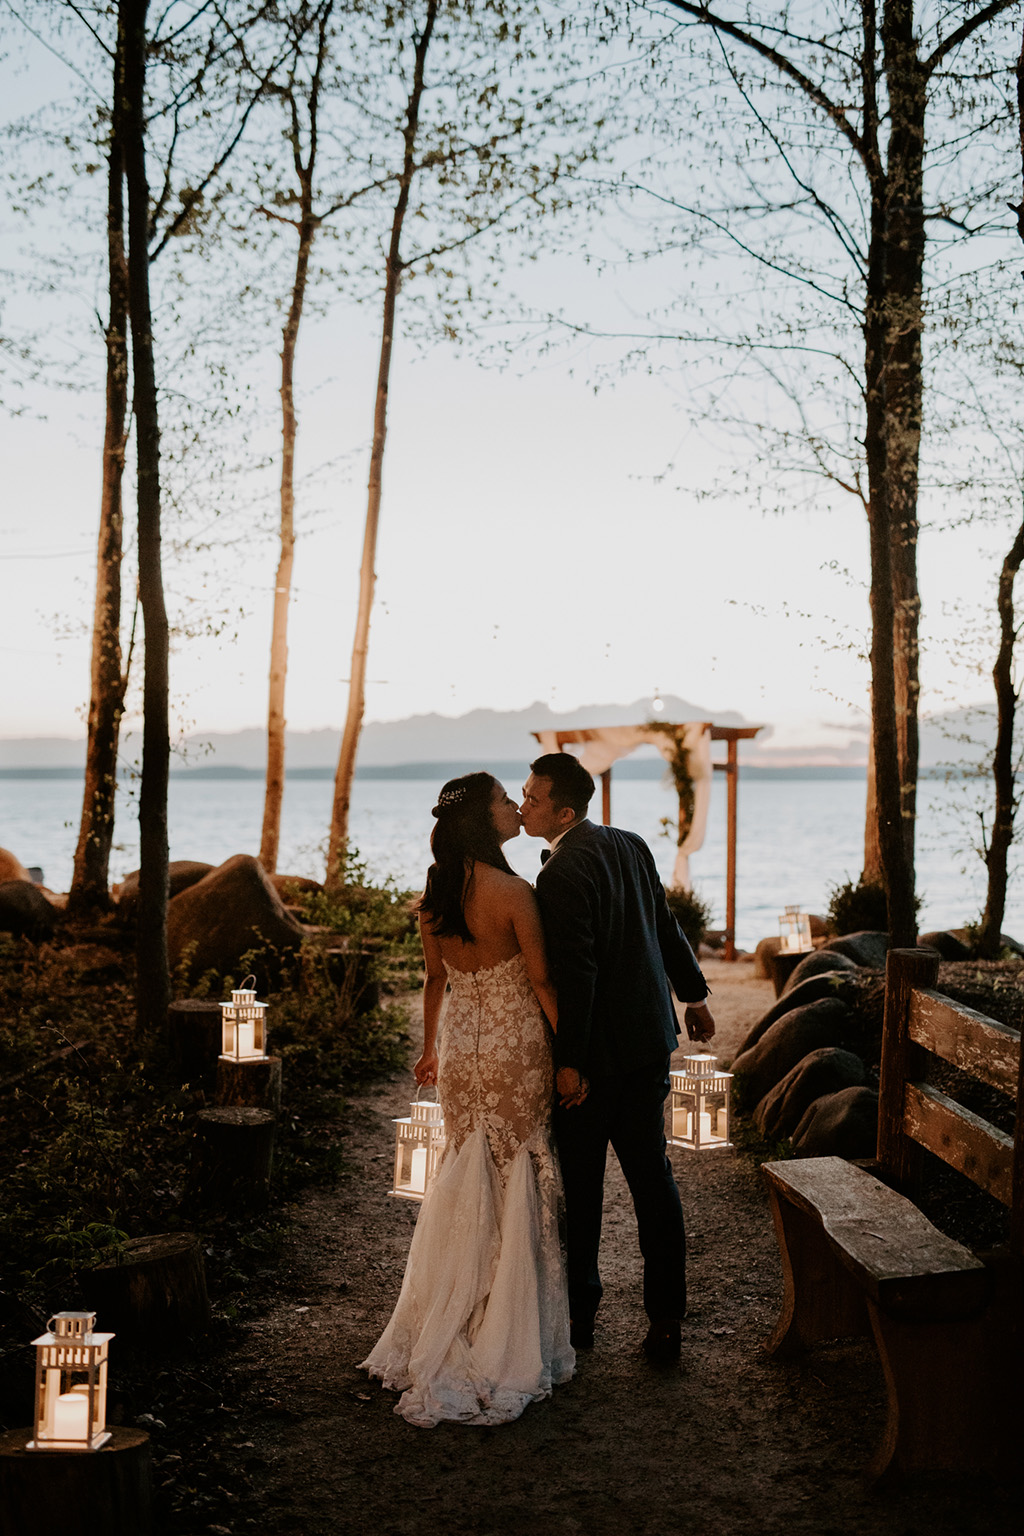 Lakeside Serenity Cottage Wedding - bride and groom kiss on tree-lined path to lake